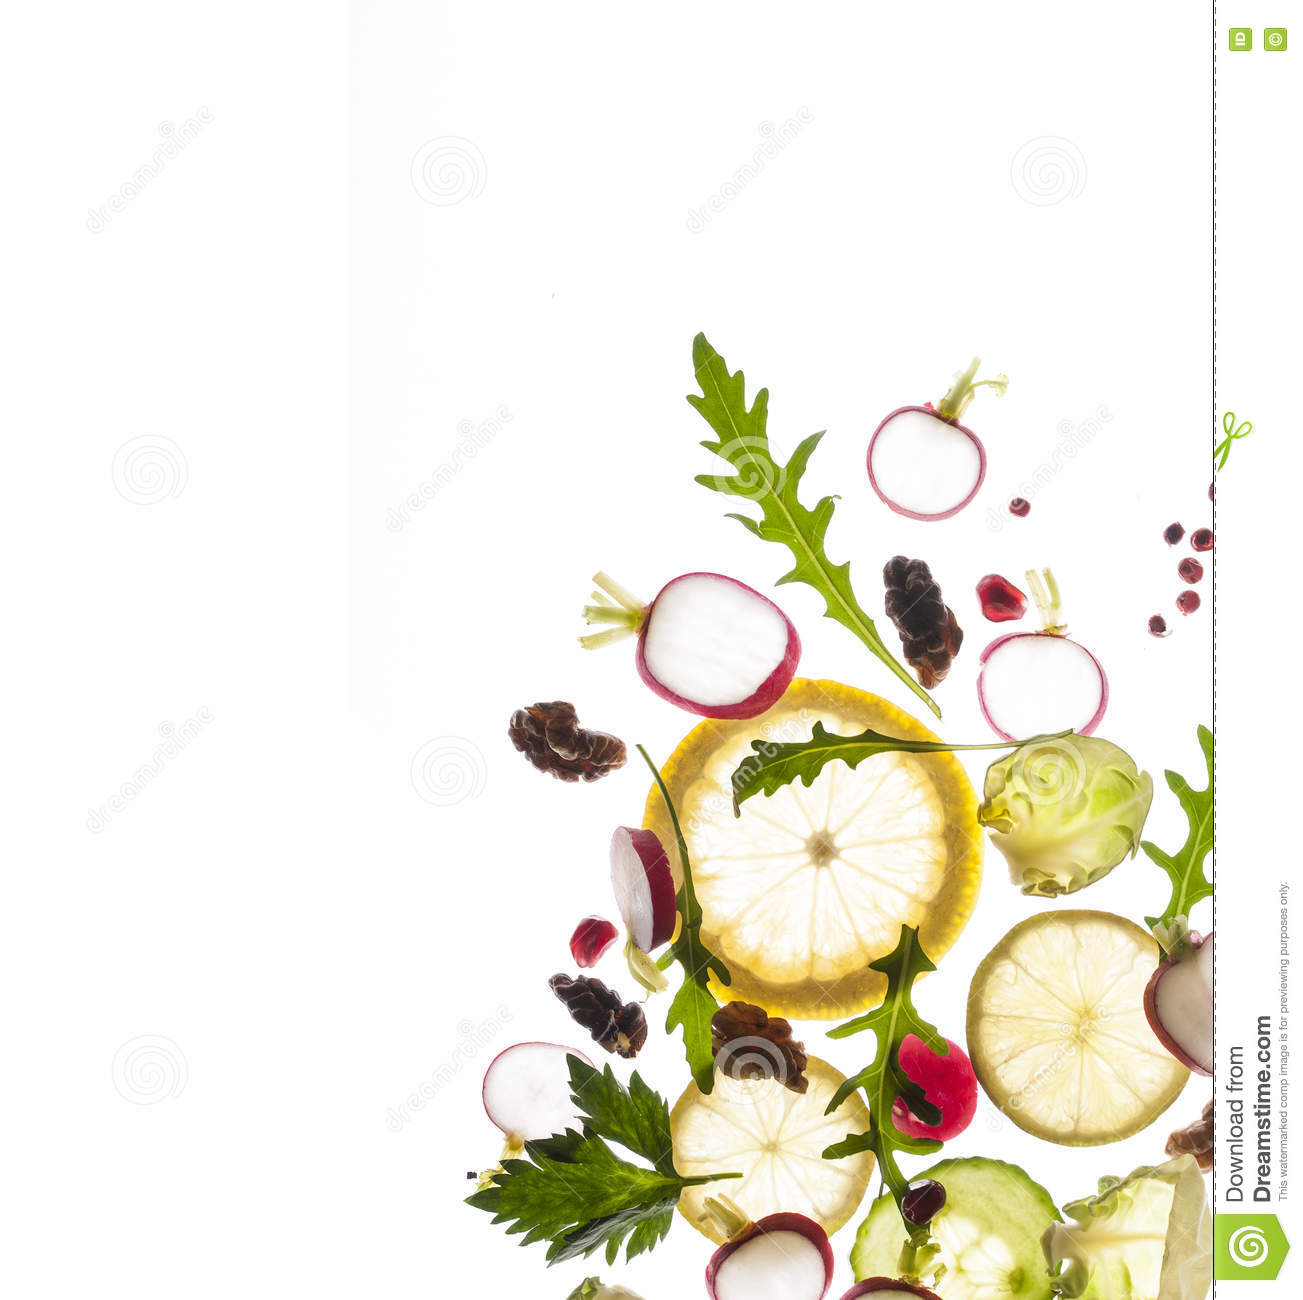 Flying Fruits And Vegetables On A White Background Stock Photo.